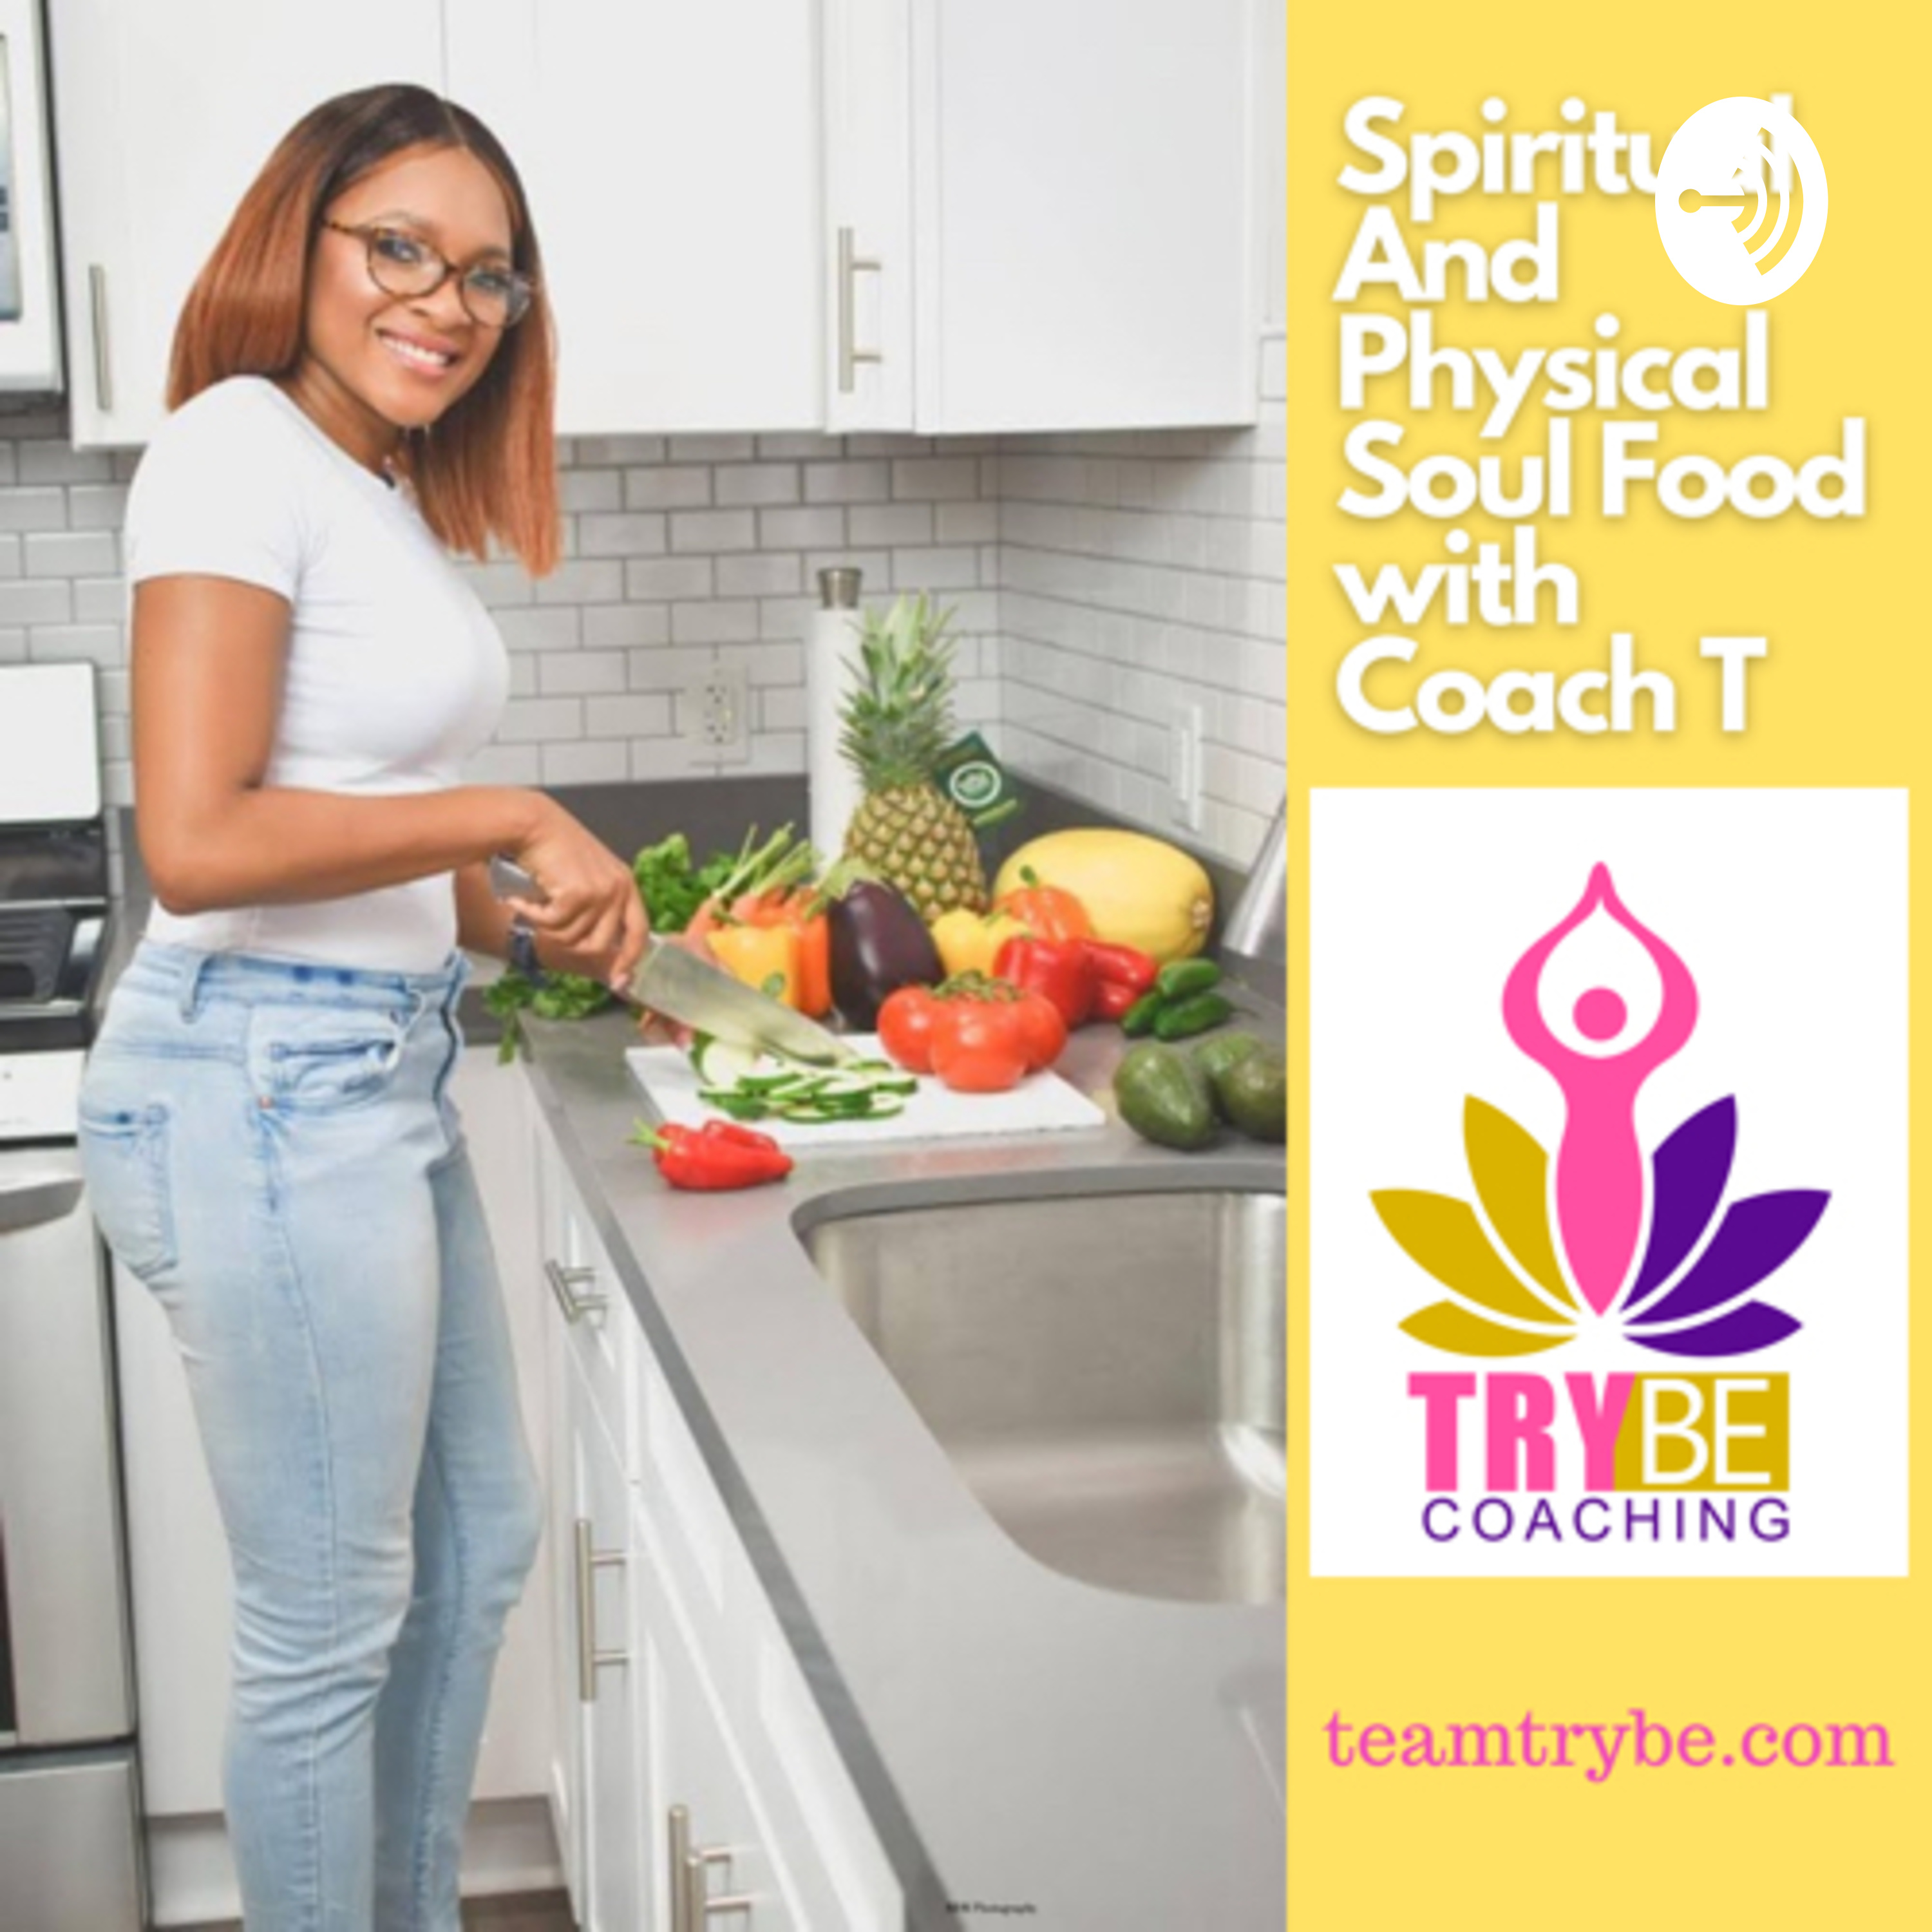 Spiritual and Physical Soul Food with Coach T